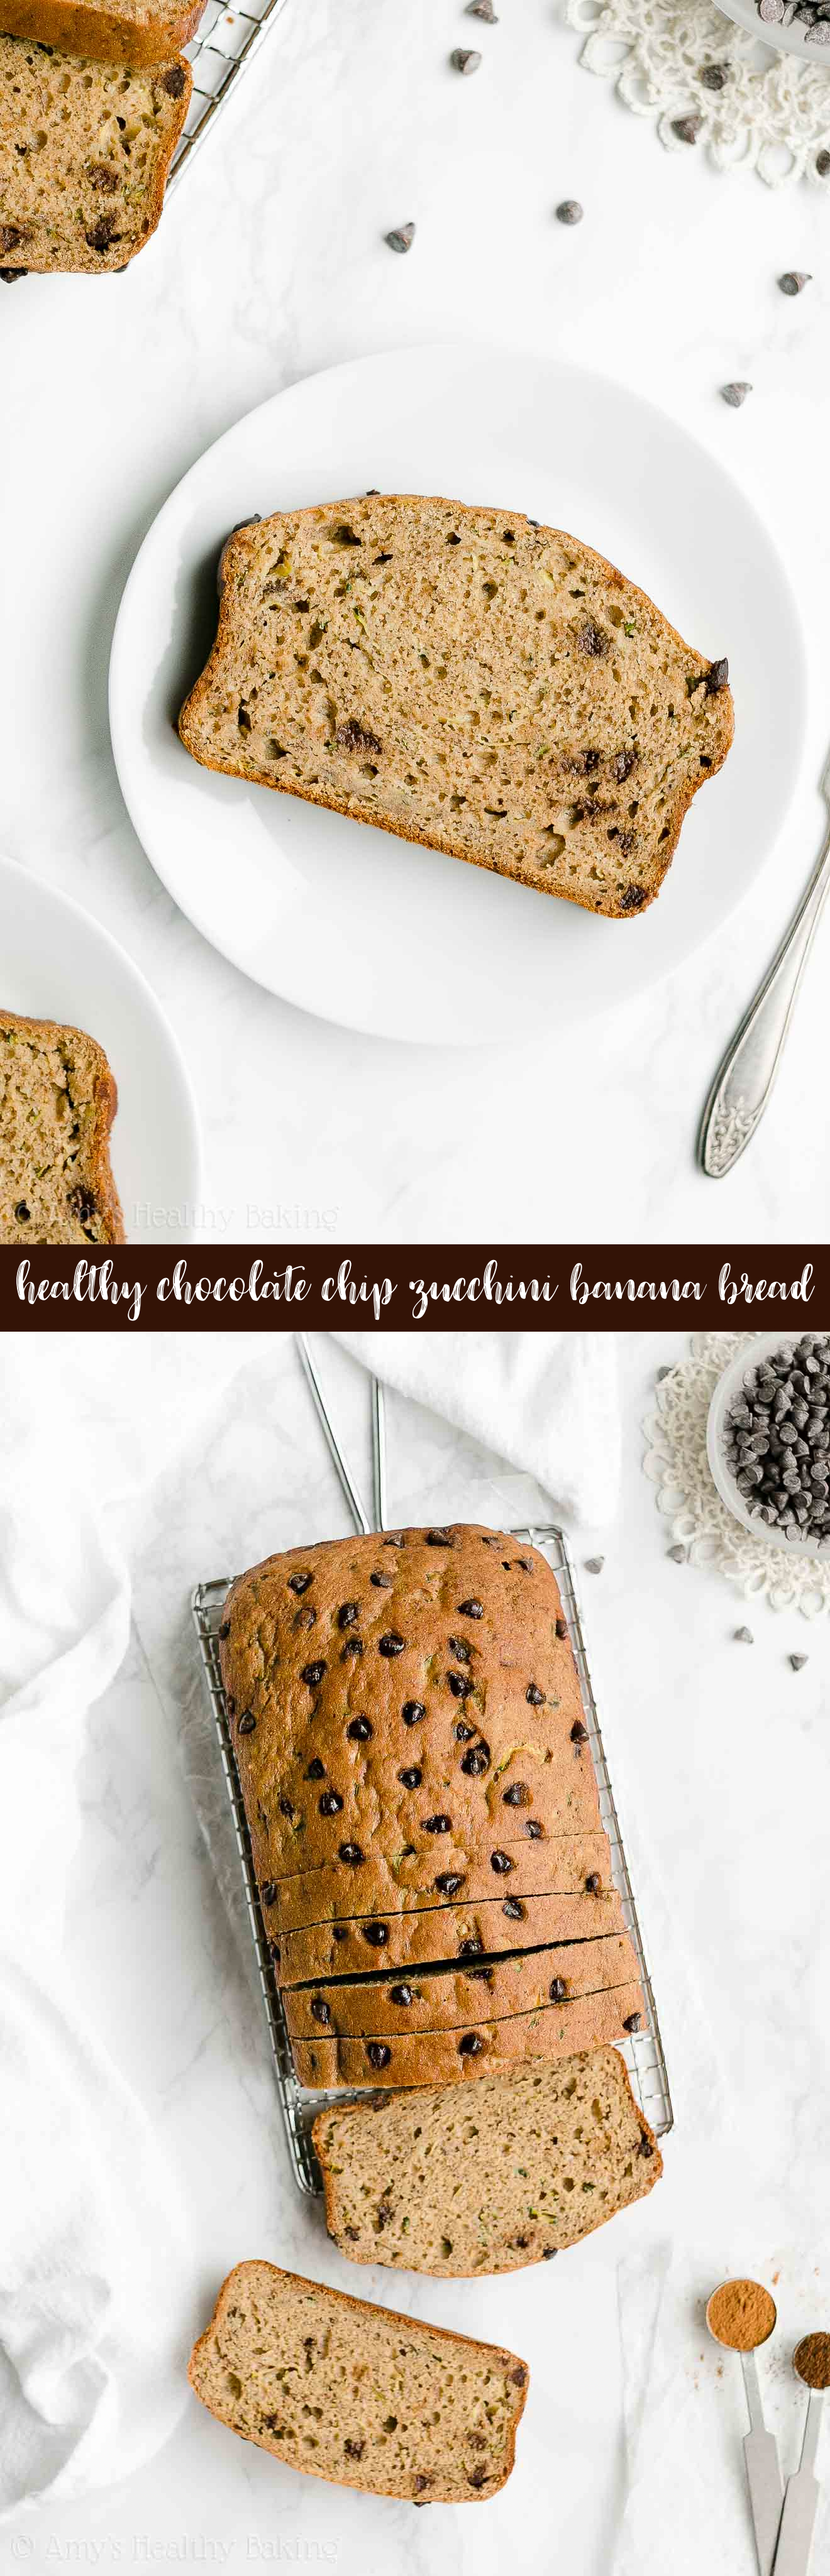 Best Ever Easy Healthy No Sugar Chocolate Chip Zucchini Banana Bread